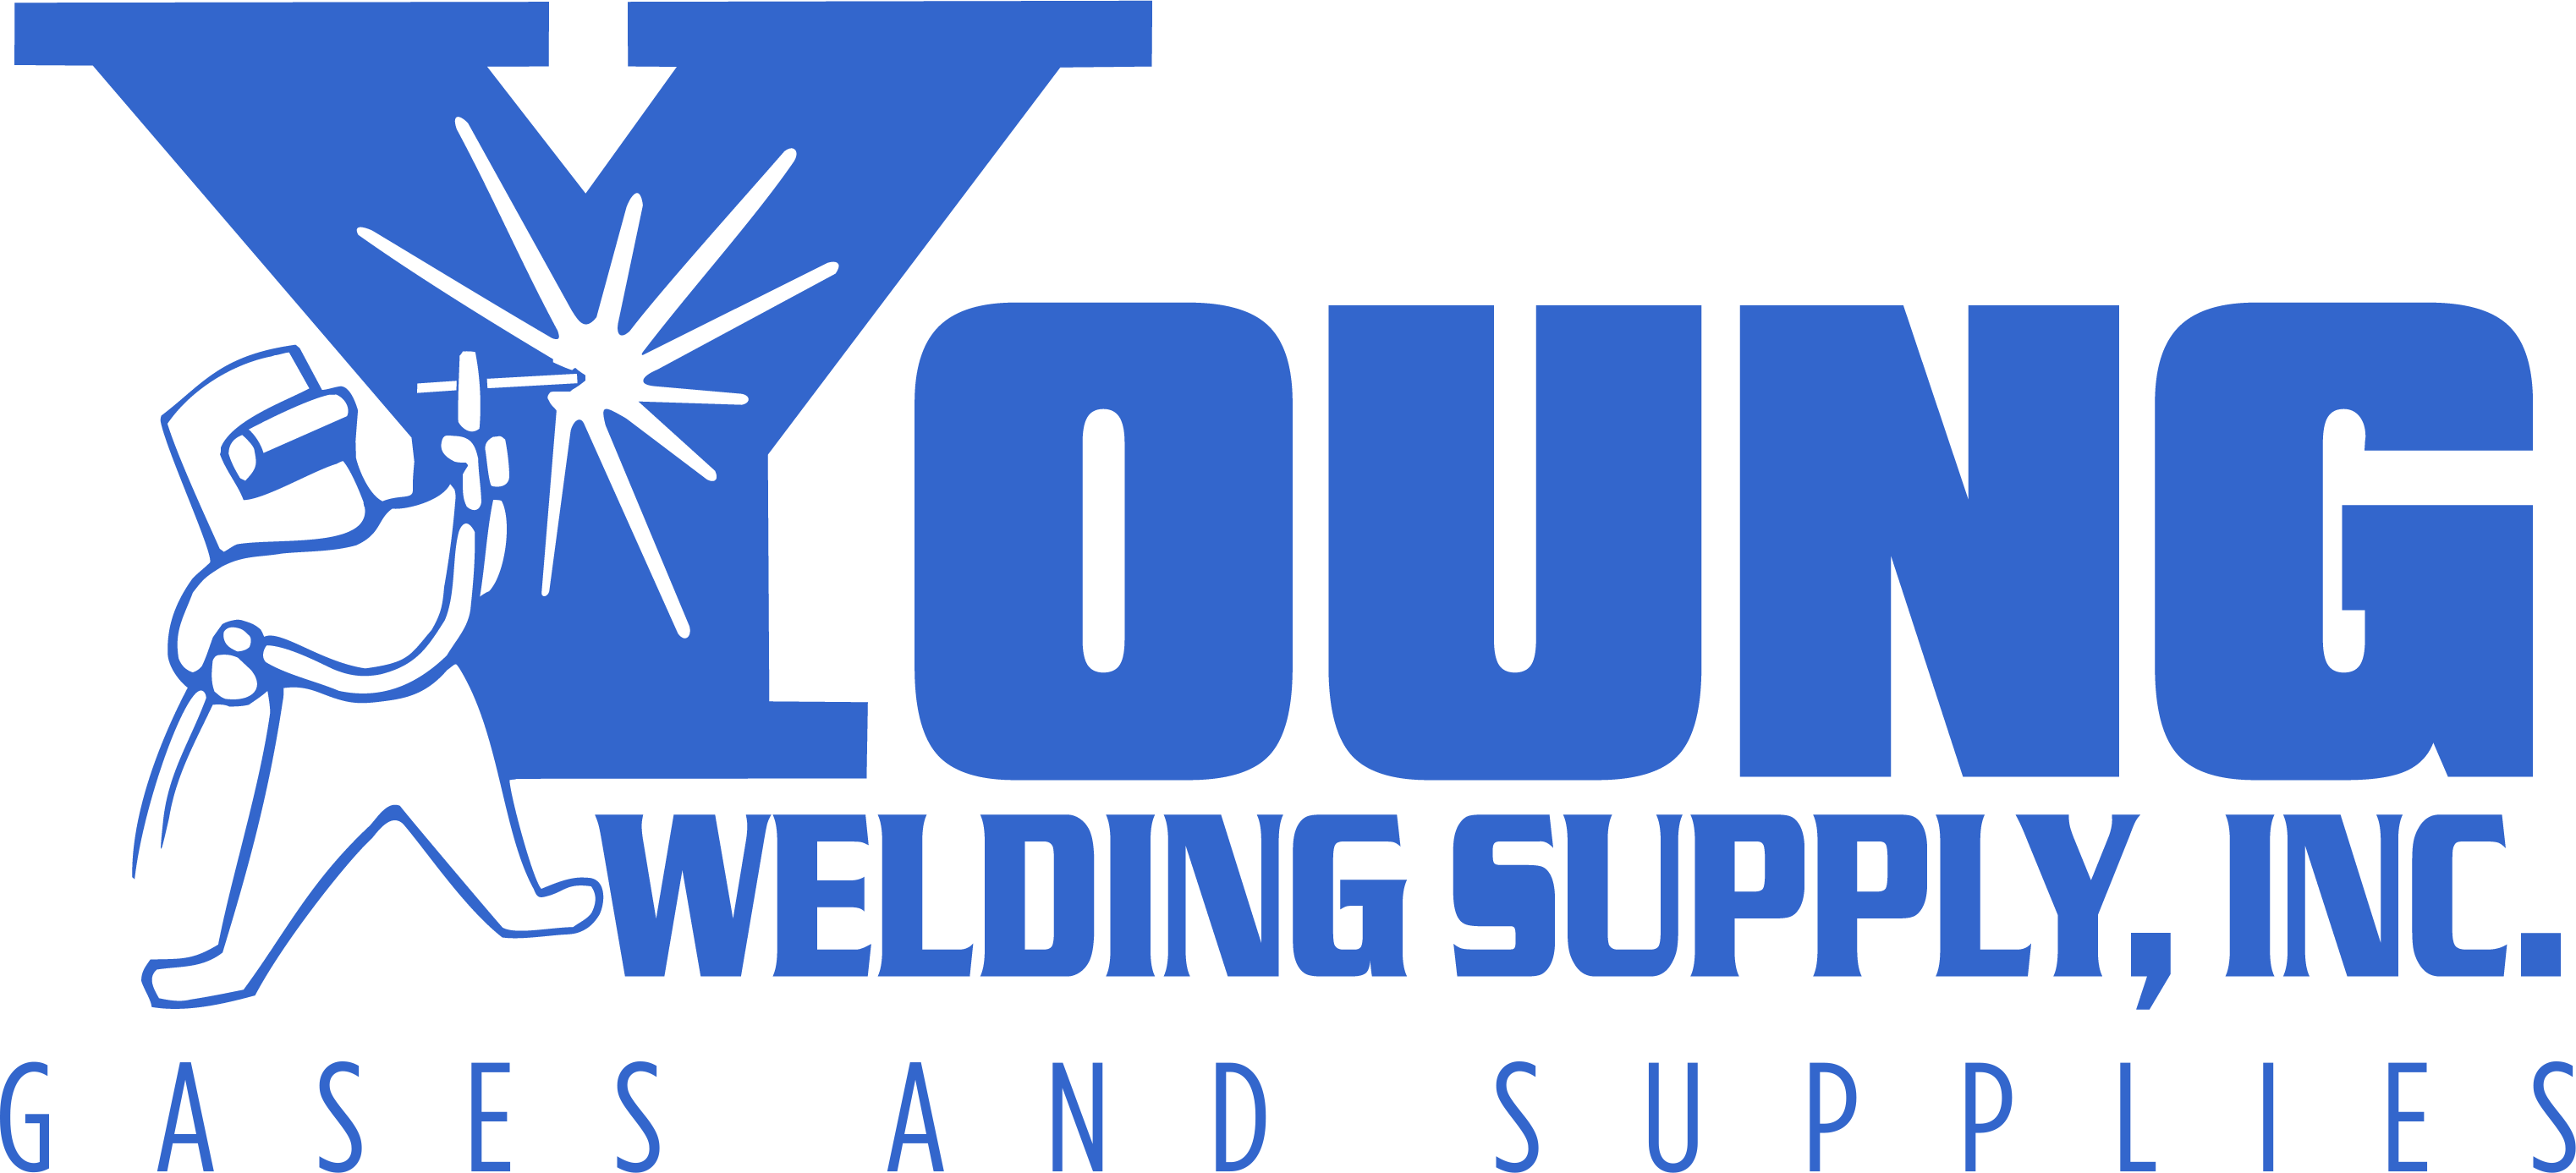 Young Welding Supplies and Gases